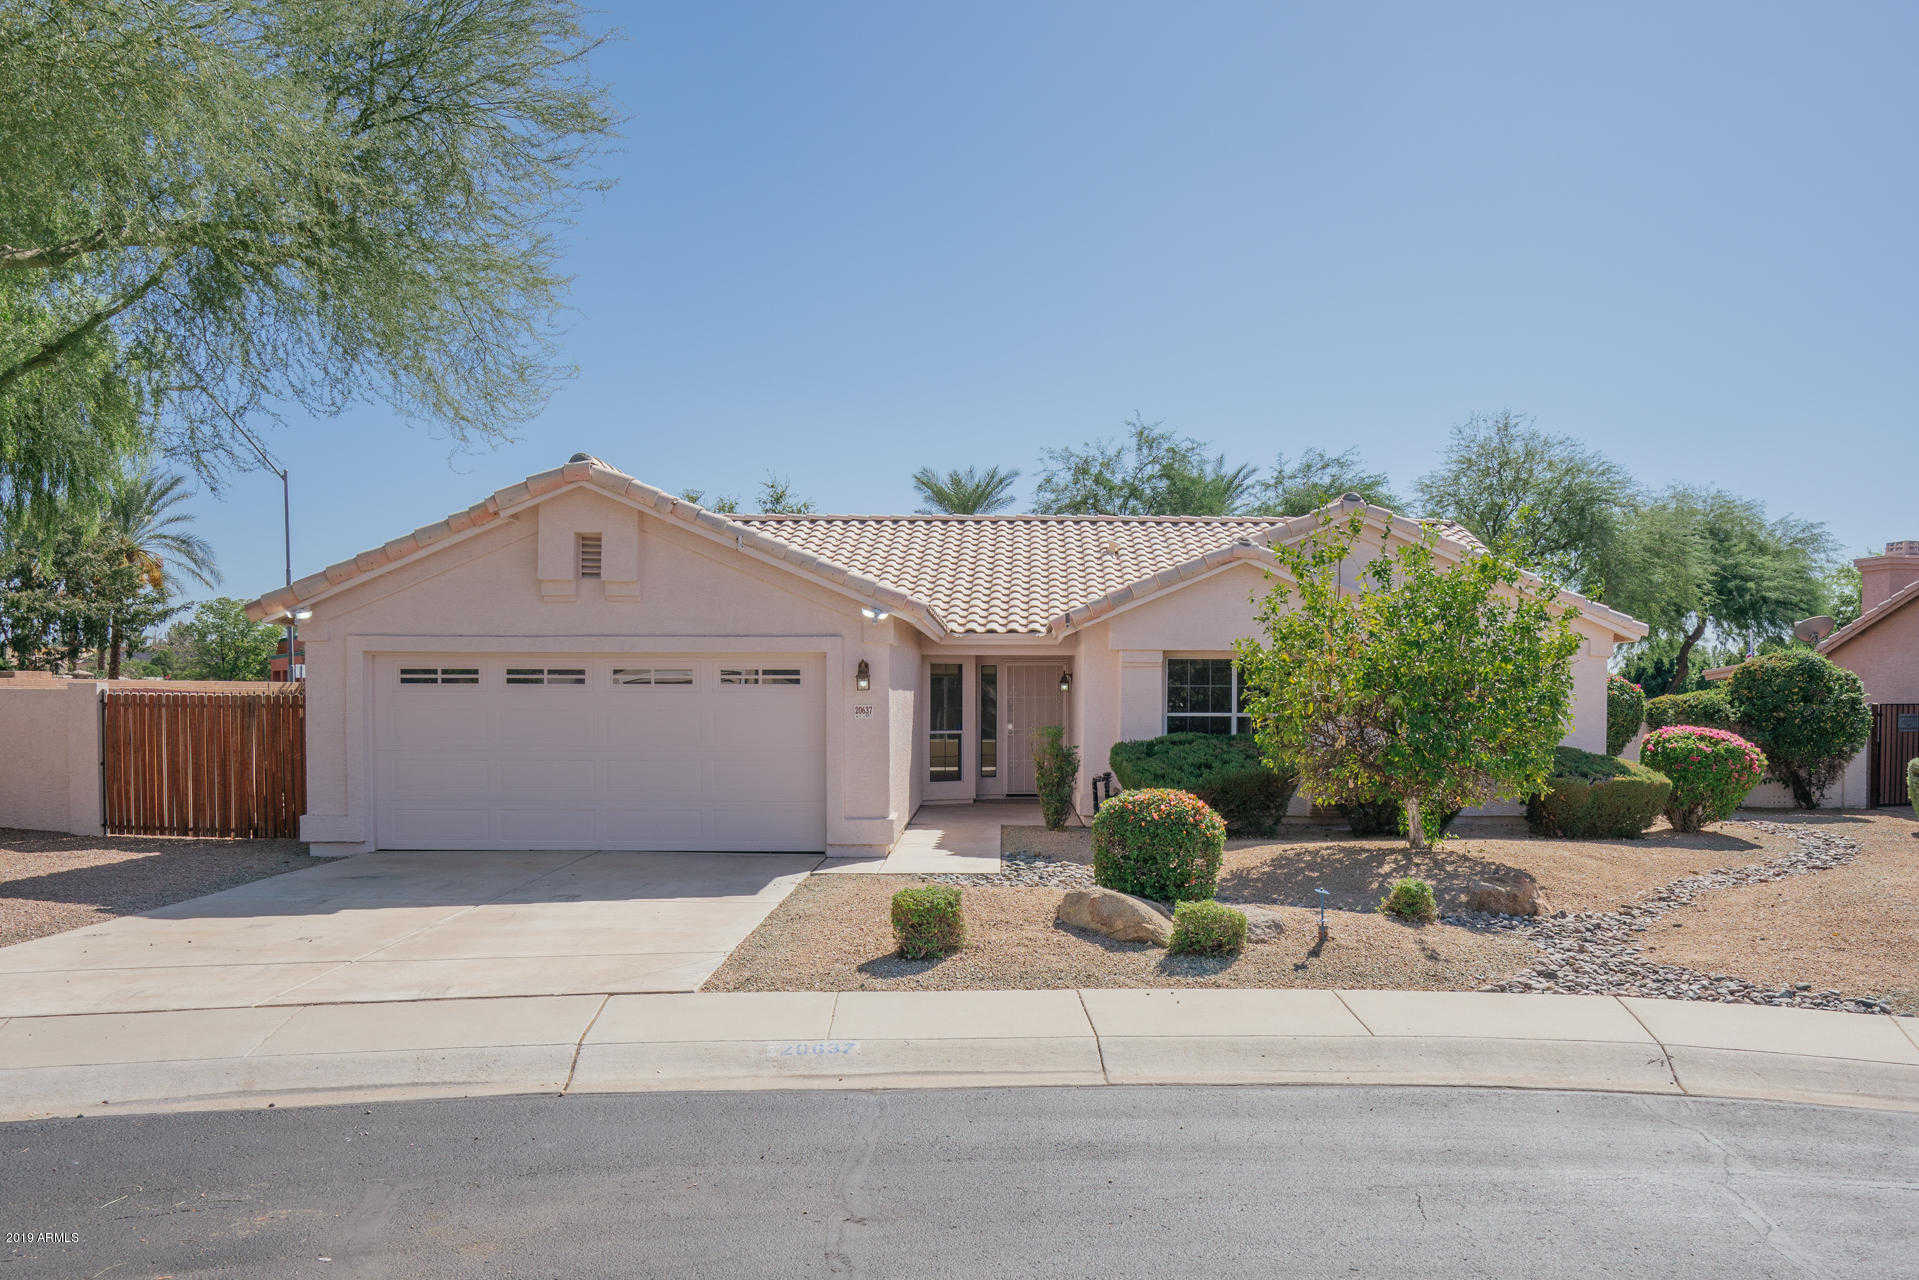 $320,000 - 3Br/2Ba - Home for Sale in Discovery At Arrowhead Ranch Lot 1-108 Tr A-i, Glendale